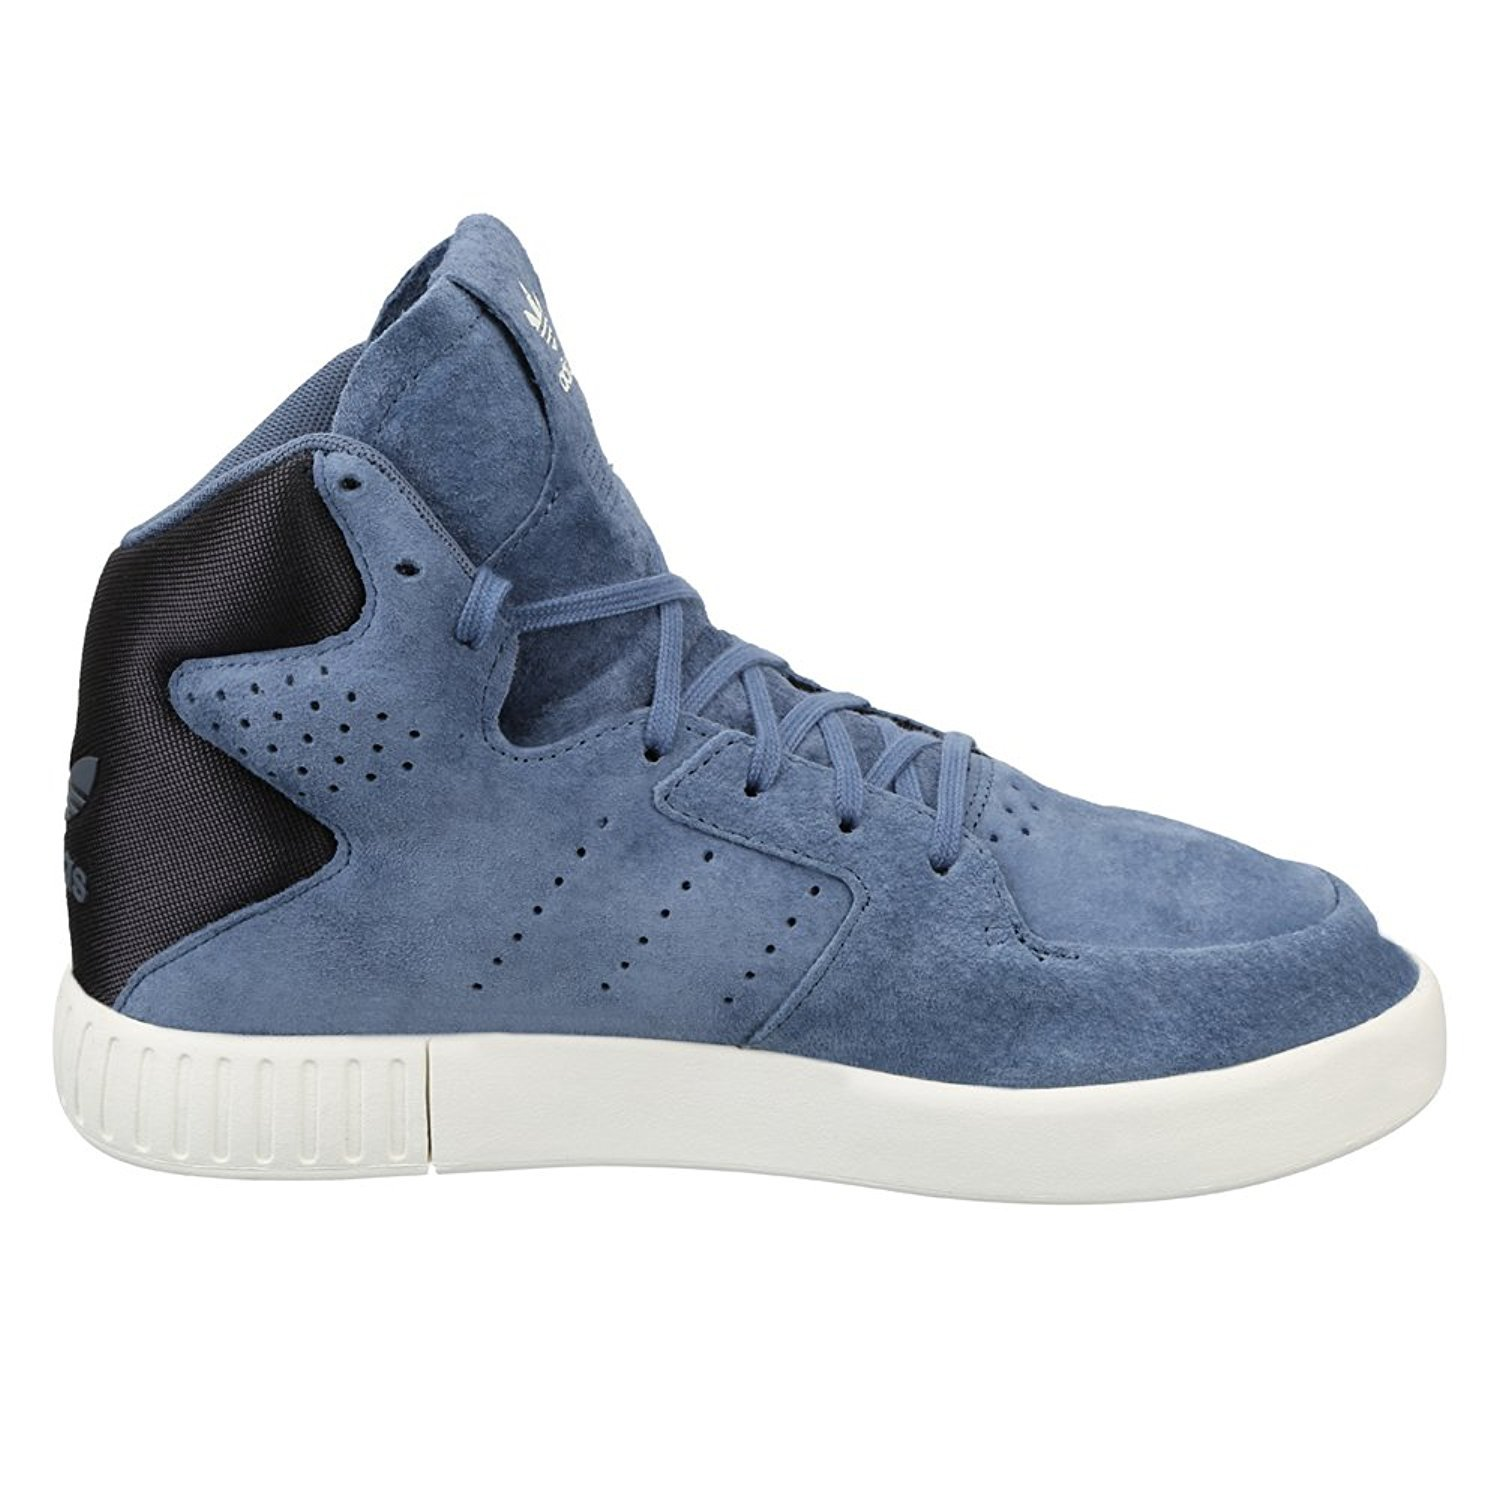 ADIDAS ORIGINALS TUBULAR INVADER 2.0 W Sneakers For Women